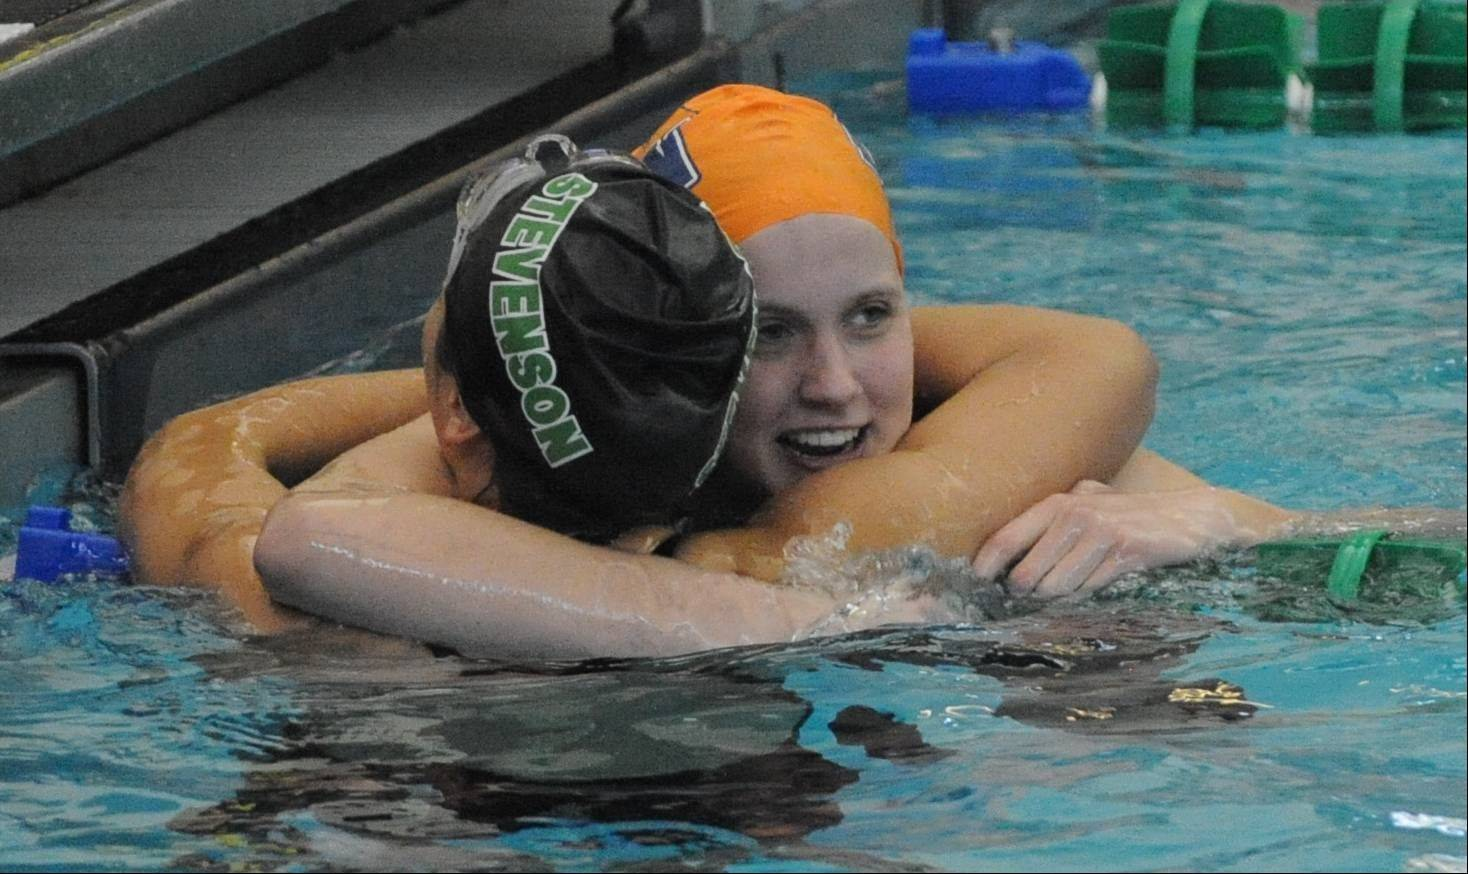 Buffalo Grove's Veronika Jedryka, facing, and Stevenson's Julia Wawer celebrate after finishing 1-2 in the 100-yard freestyle at Saturday's Stevenson sectional.